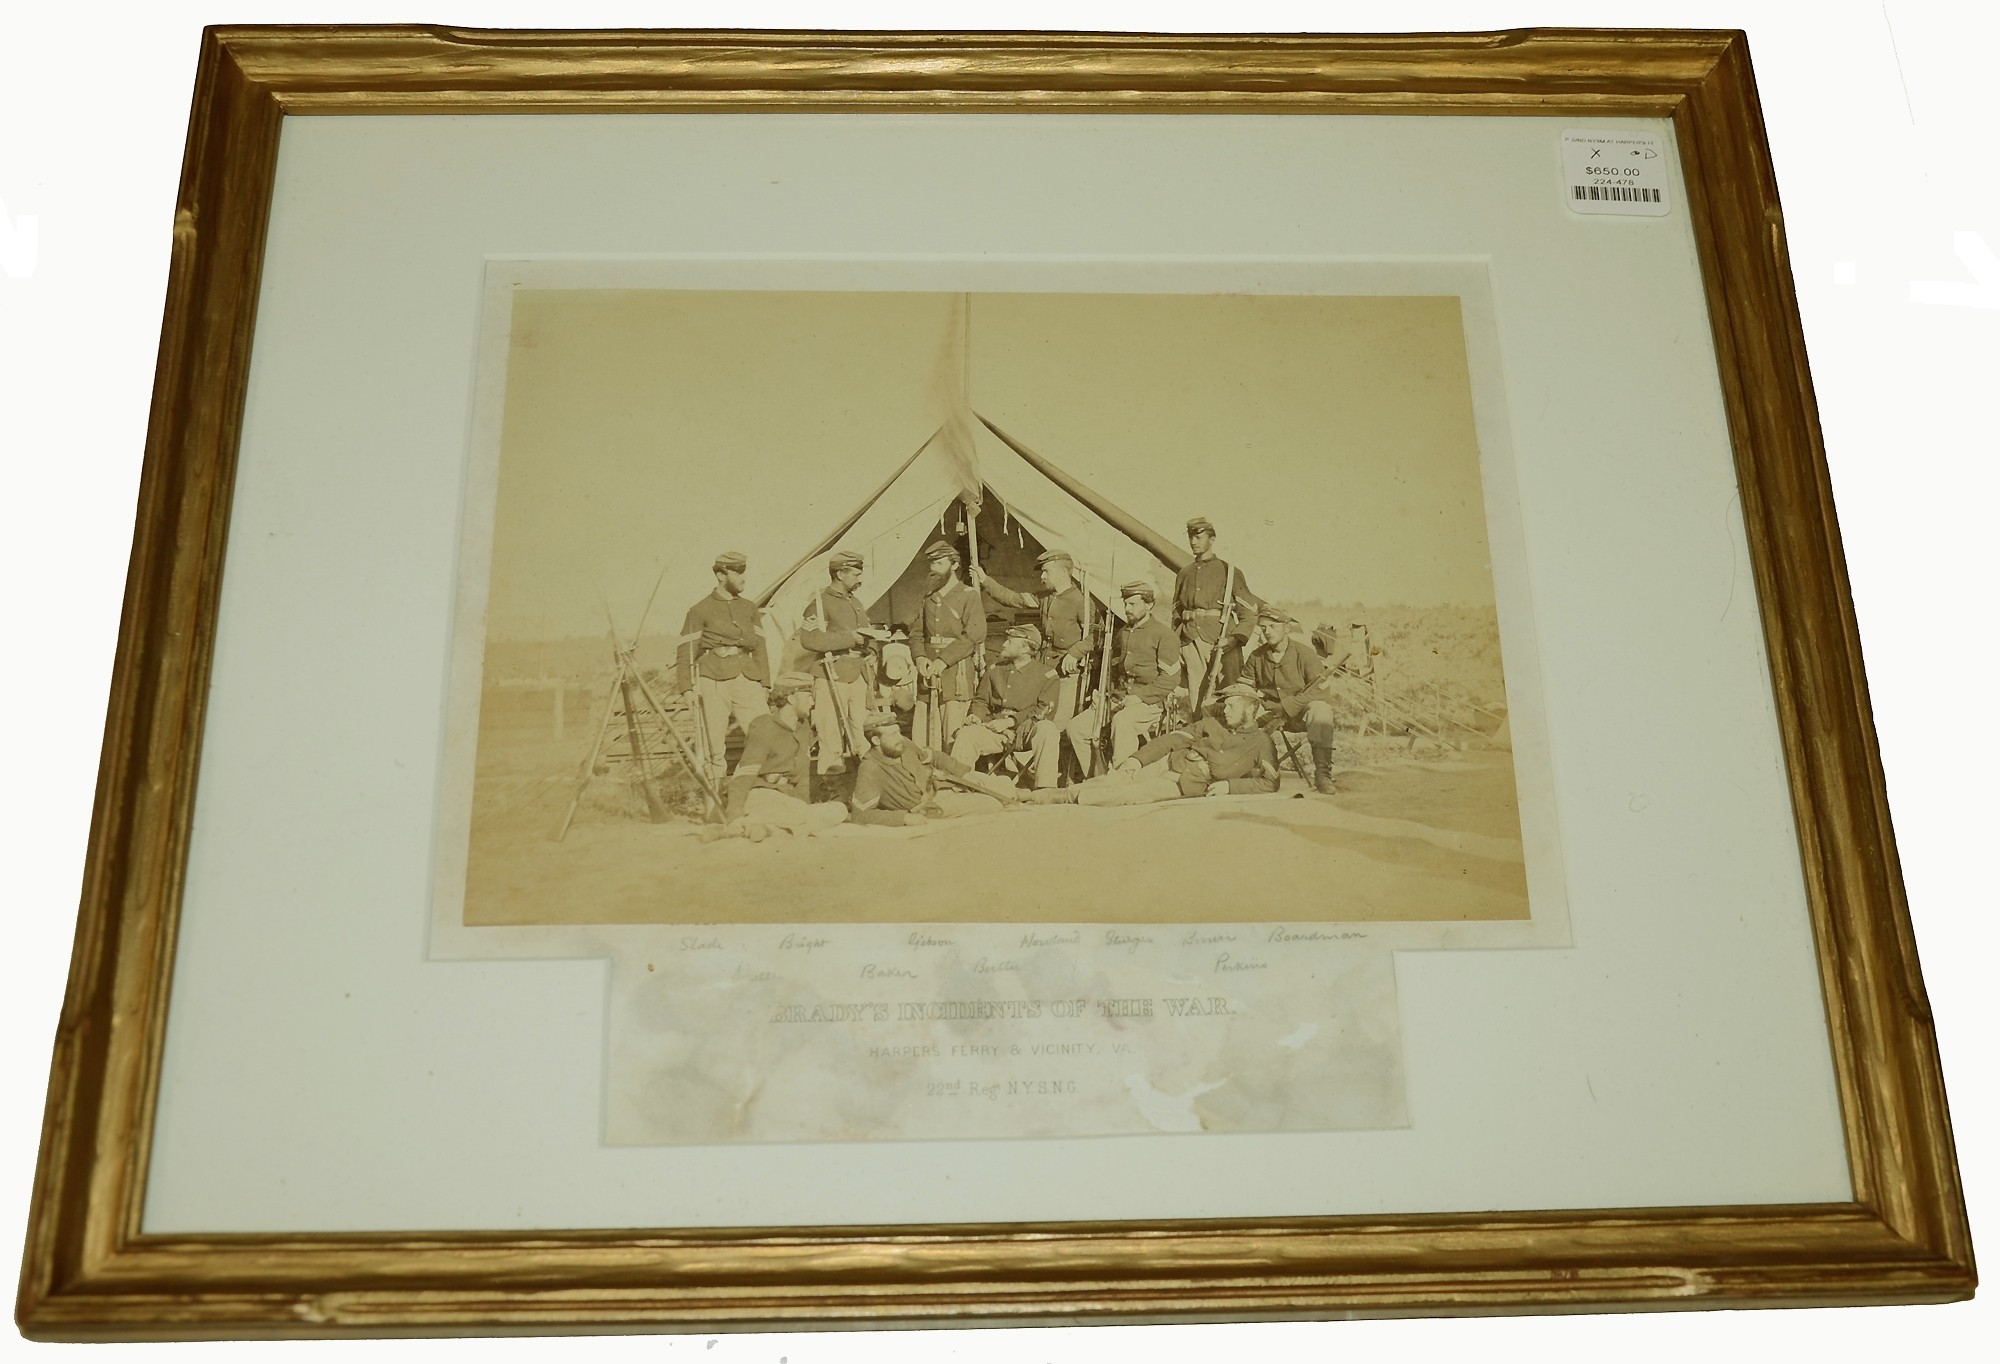 FRAMED & IDENTIFIED BRADY ALBUMEN OF 22ND NEW YORK NATIONAL GUARD